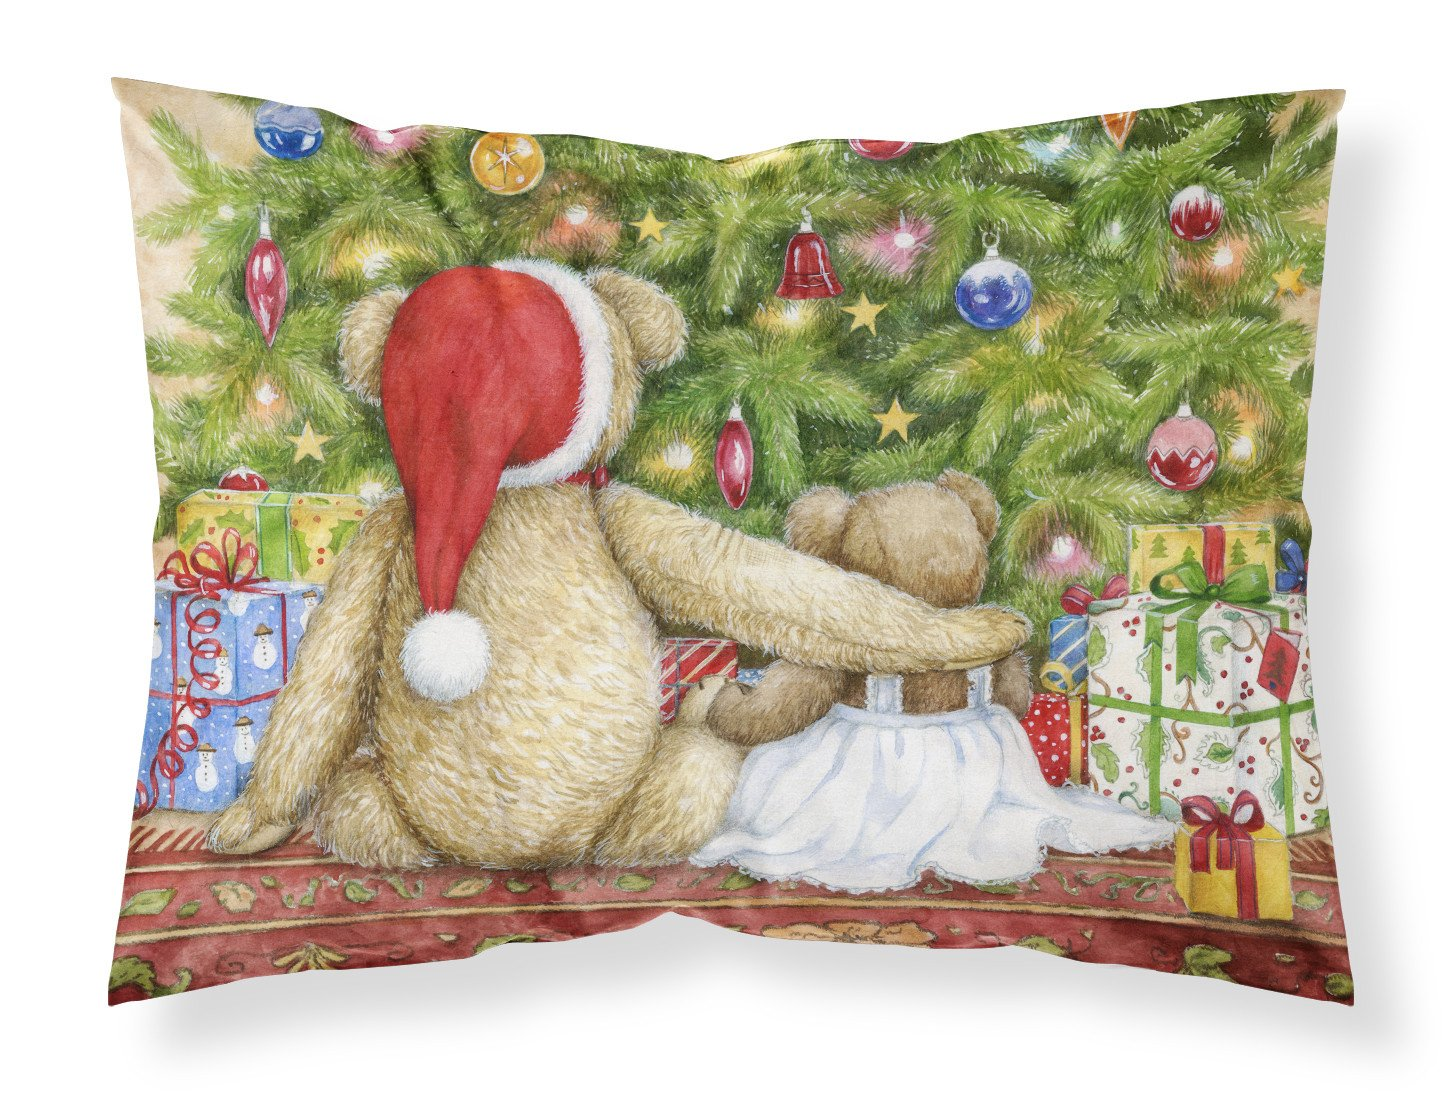 Christmas Teddy Bears with Tree Fabric Standard Pillowcase CDCO0415PILLOWCASE by Caroline's Treasures